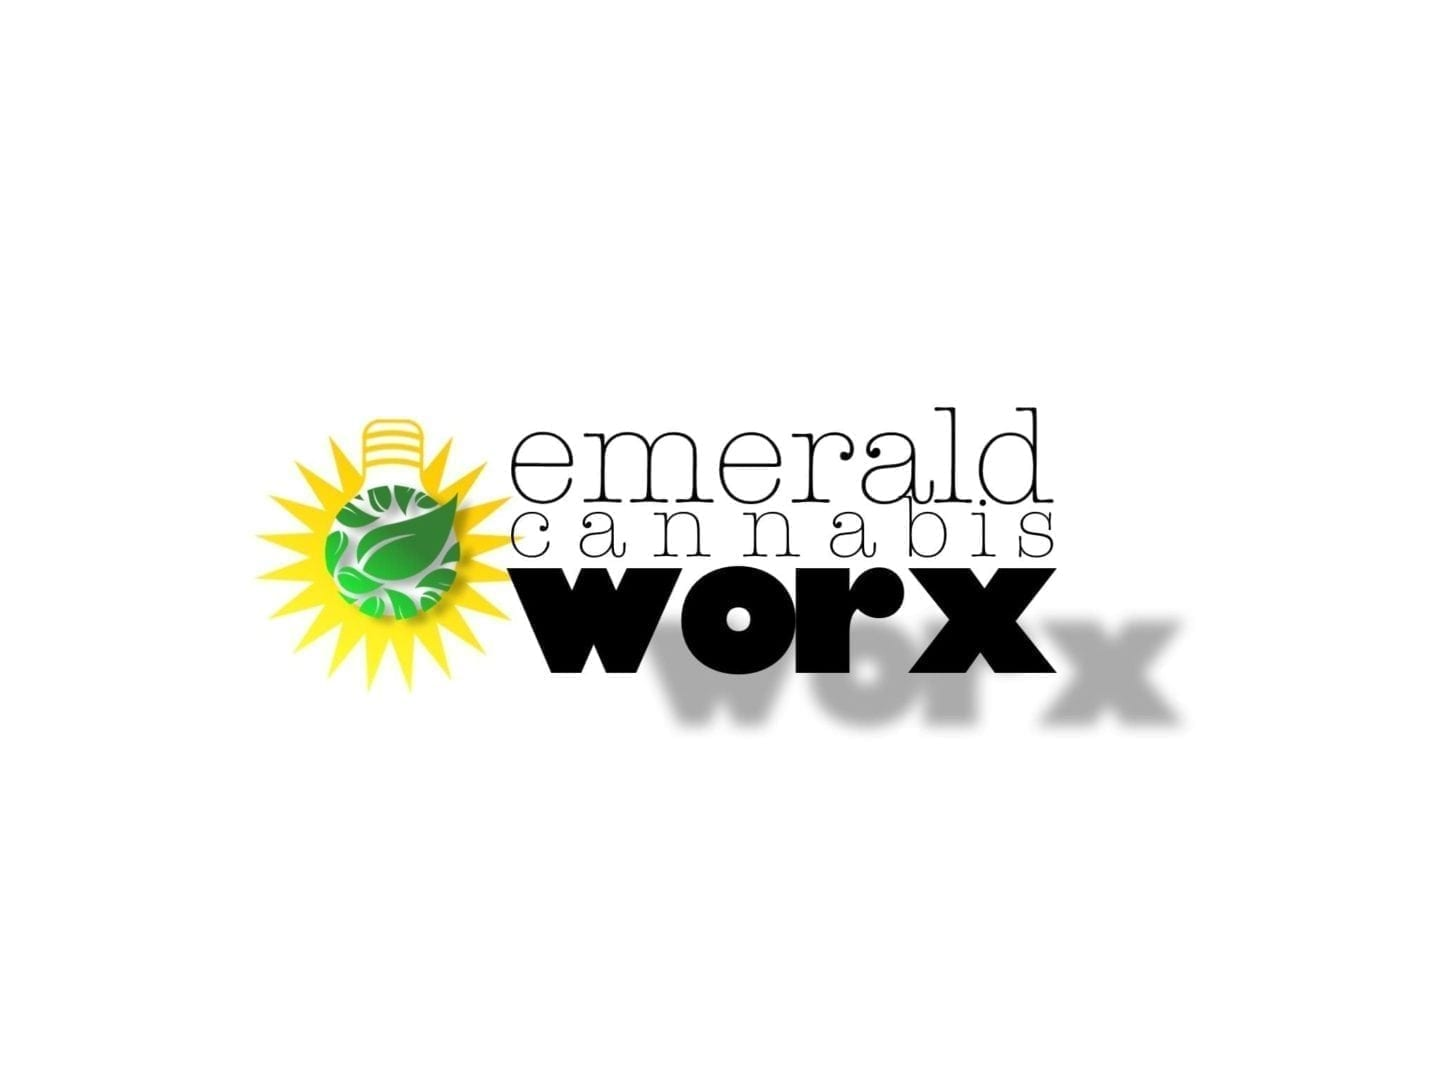 Emerald Cannabis Worx